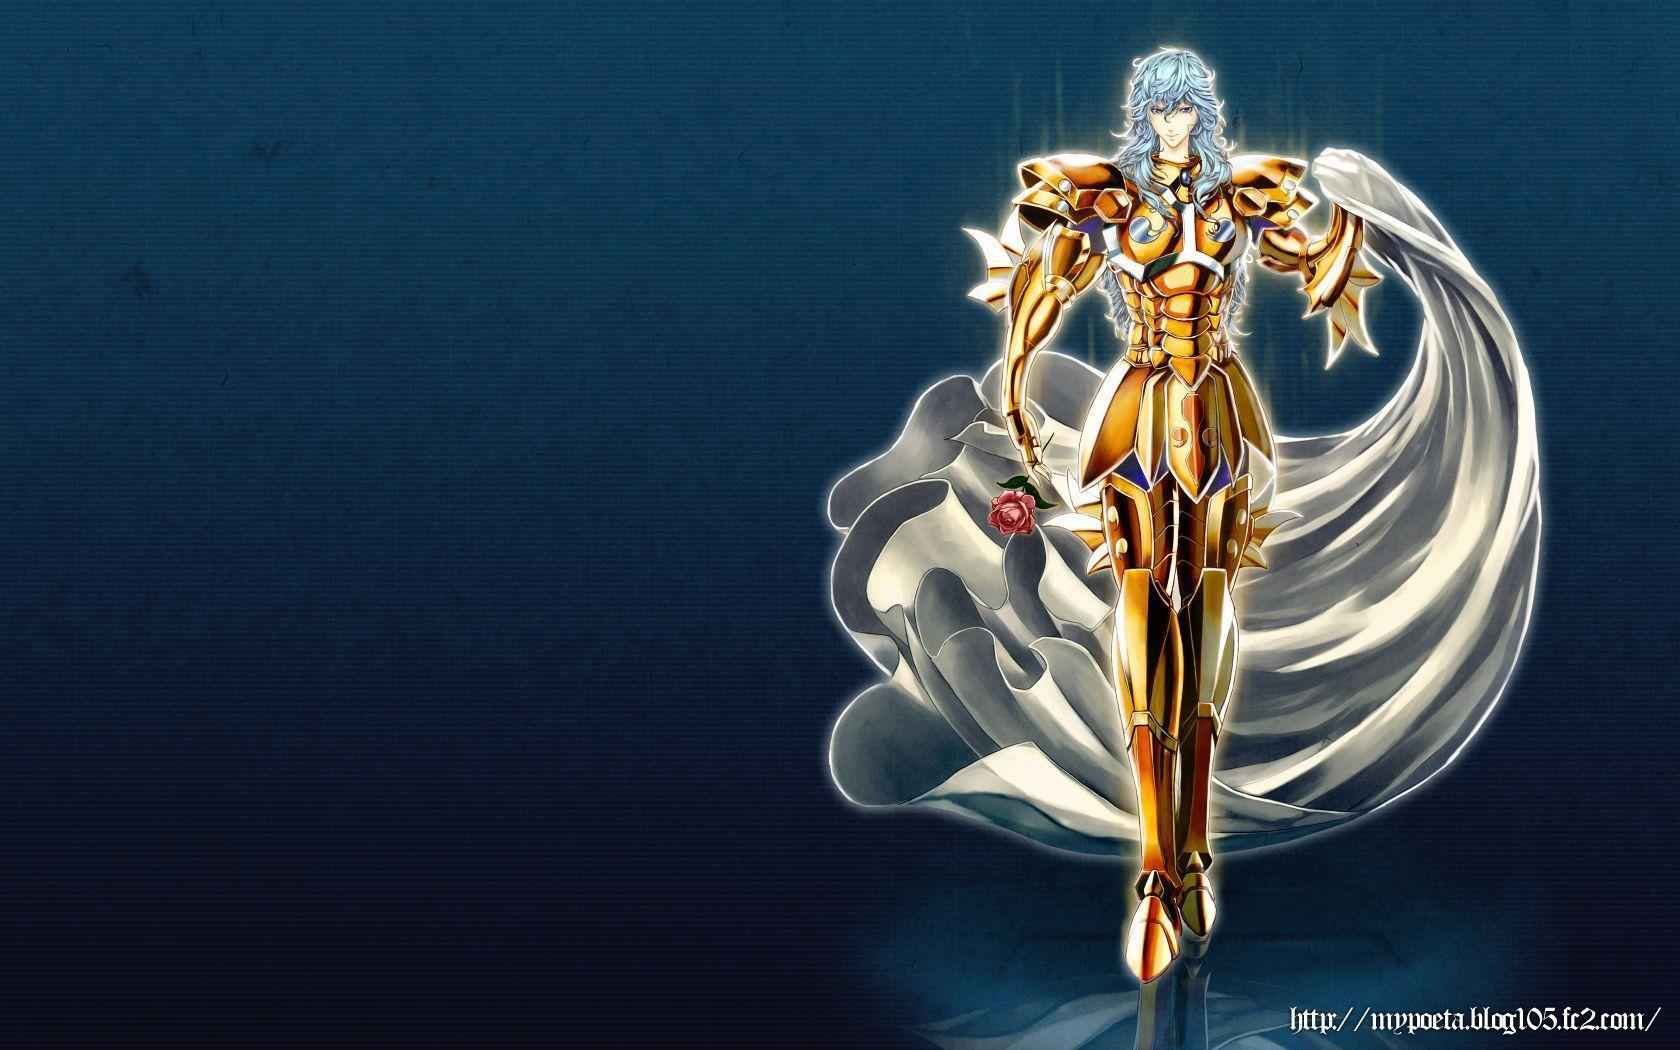 Knights of the Zodiac | Free Anime Wallpaper Site